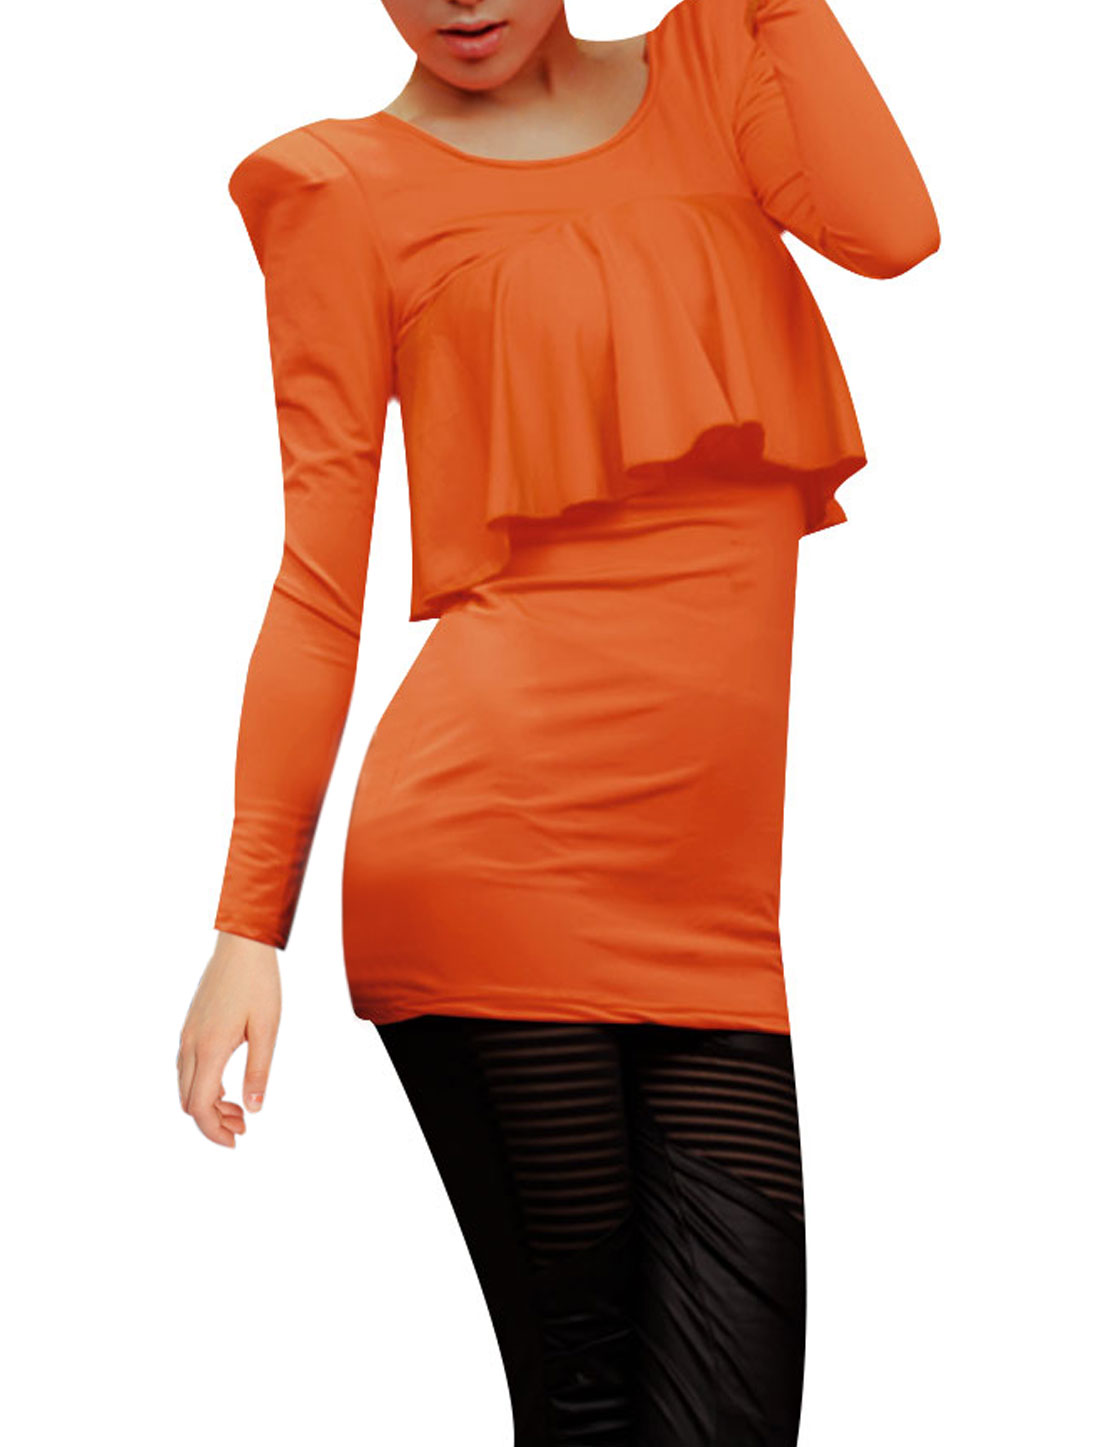 Ladies Orange Scoop Neck Flounce Upper Formfitting Pullover Tunic Shirt XS